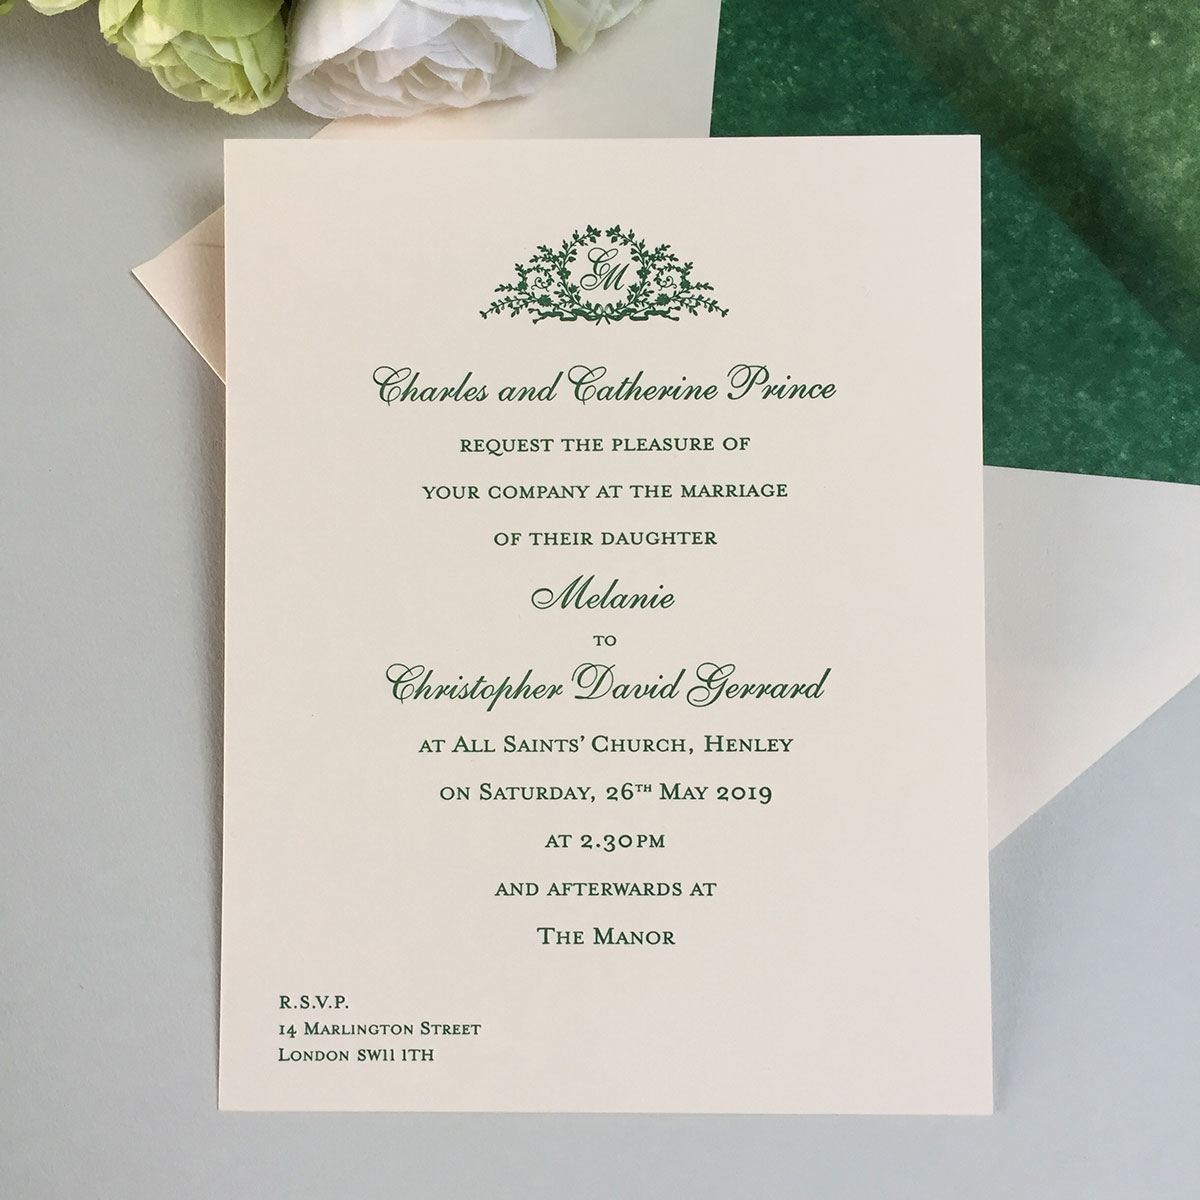 melanie wedding invitation